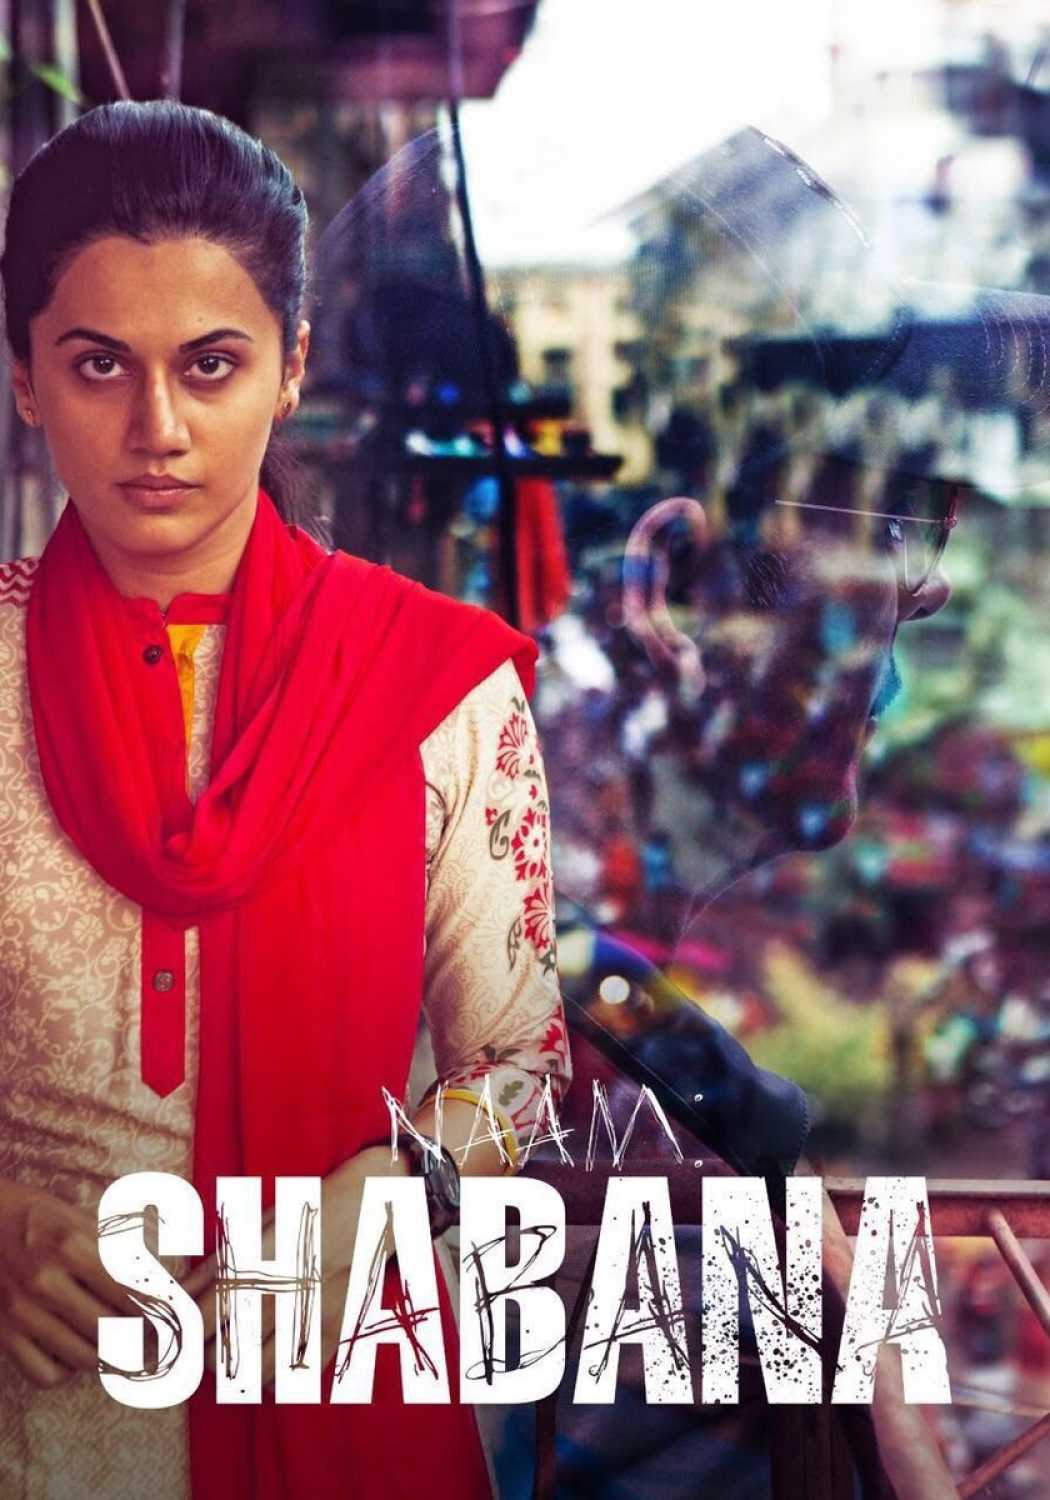 Will Naam Shabana start a new spin-off trend in Hindi cinema?